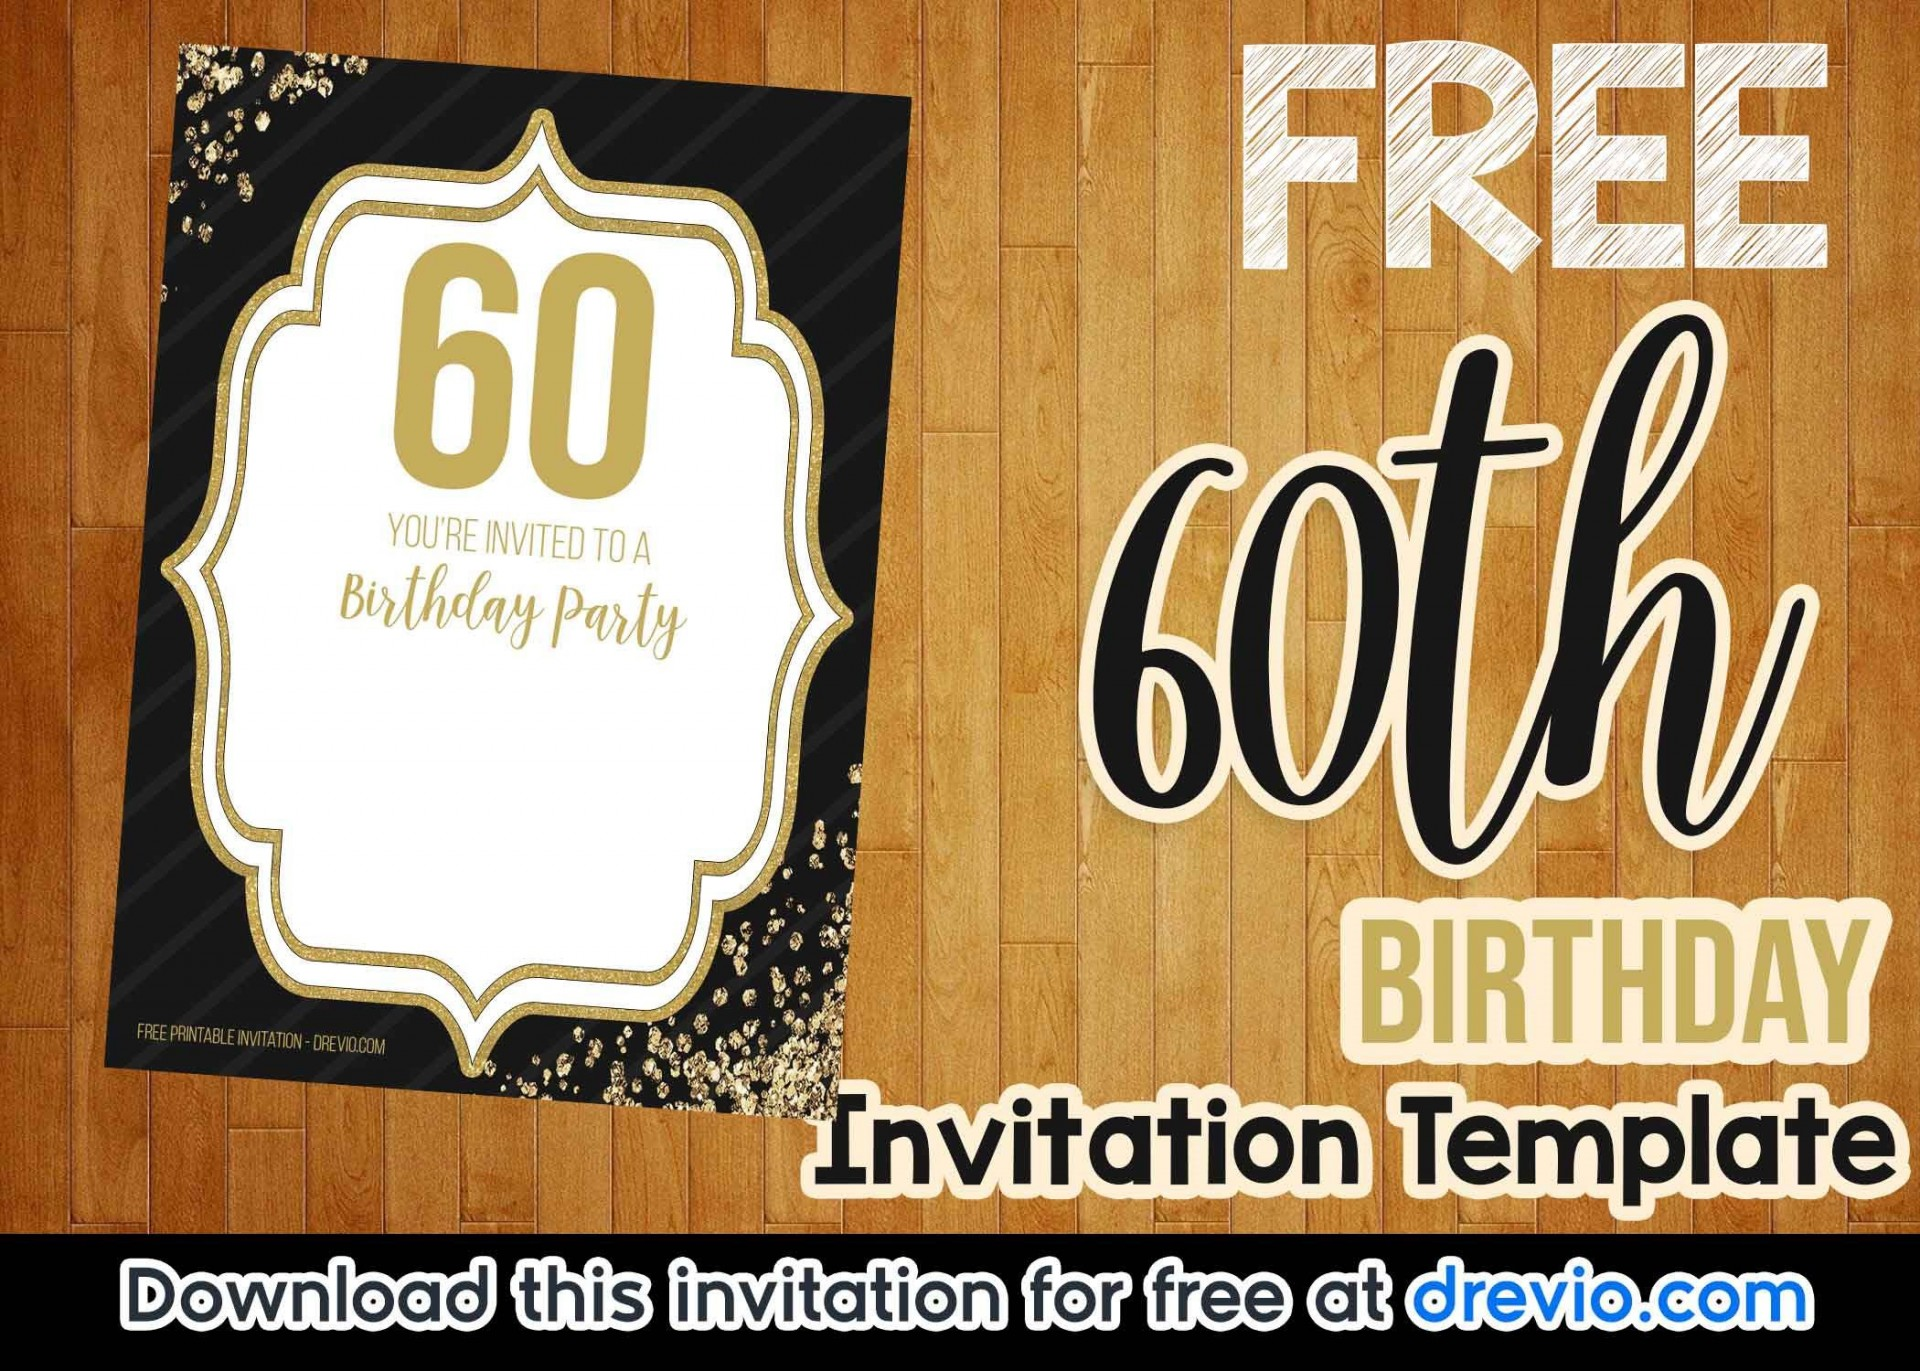 008 Frightening Free 60th Birthday Invitation Template Concept  Templates Surprise Download For Word Party1920